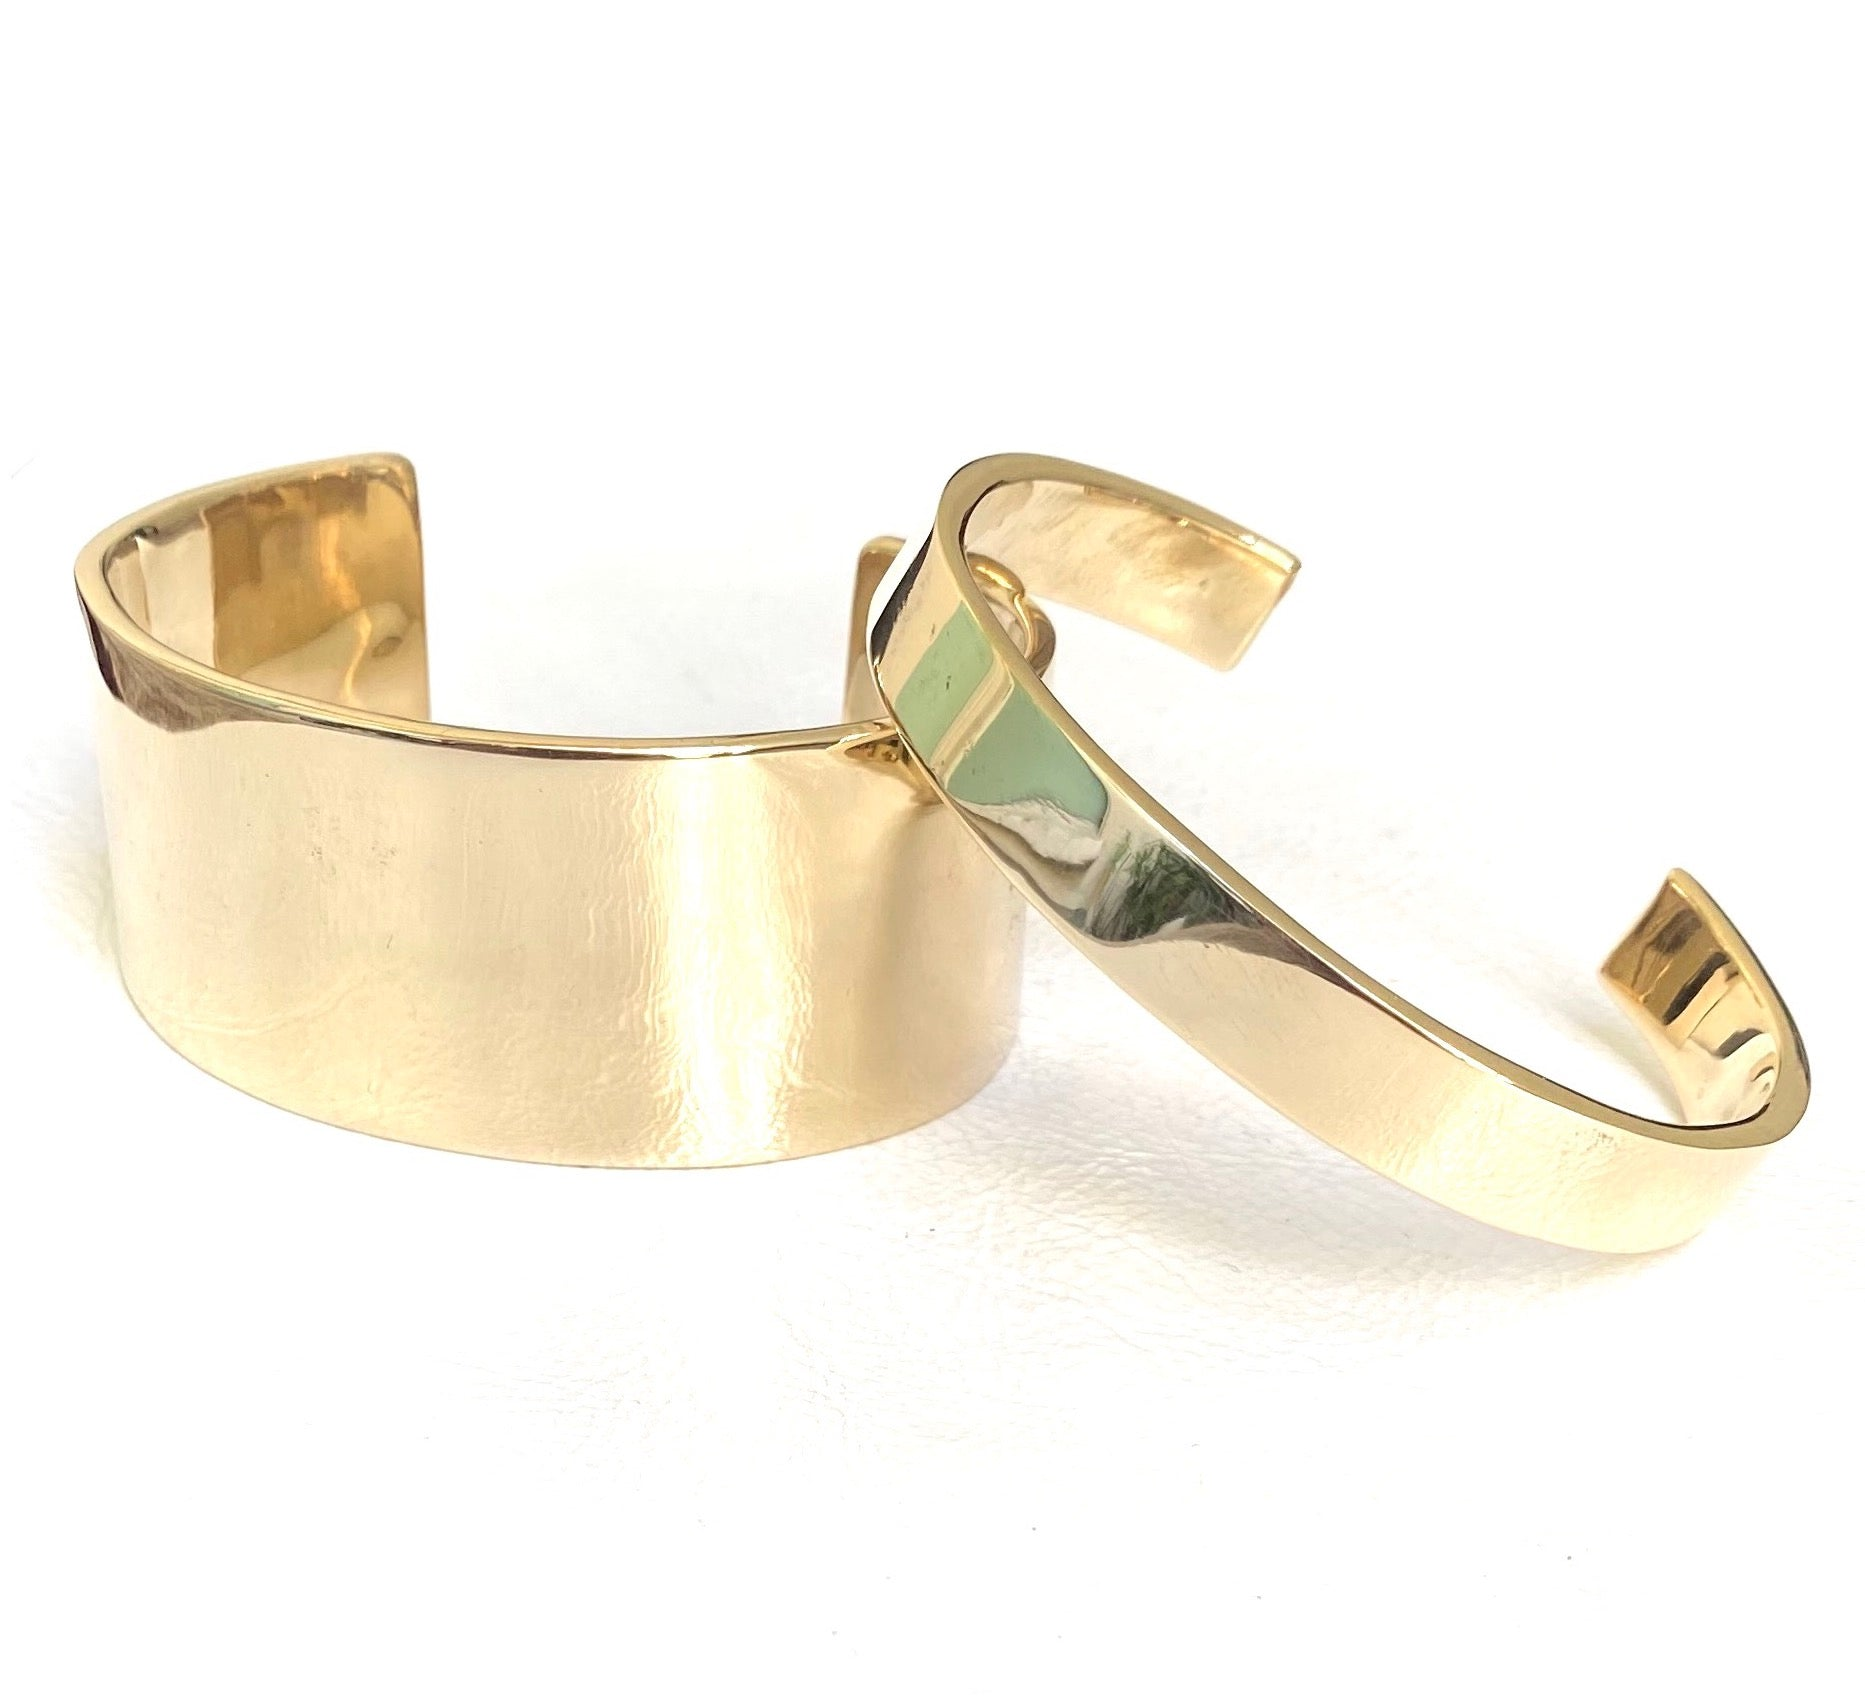 Wide cuffs, bronze +more options